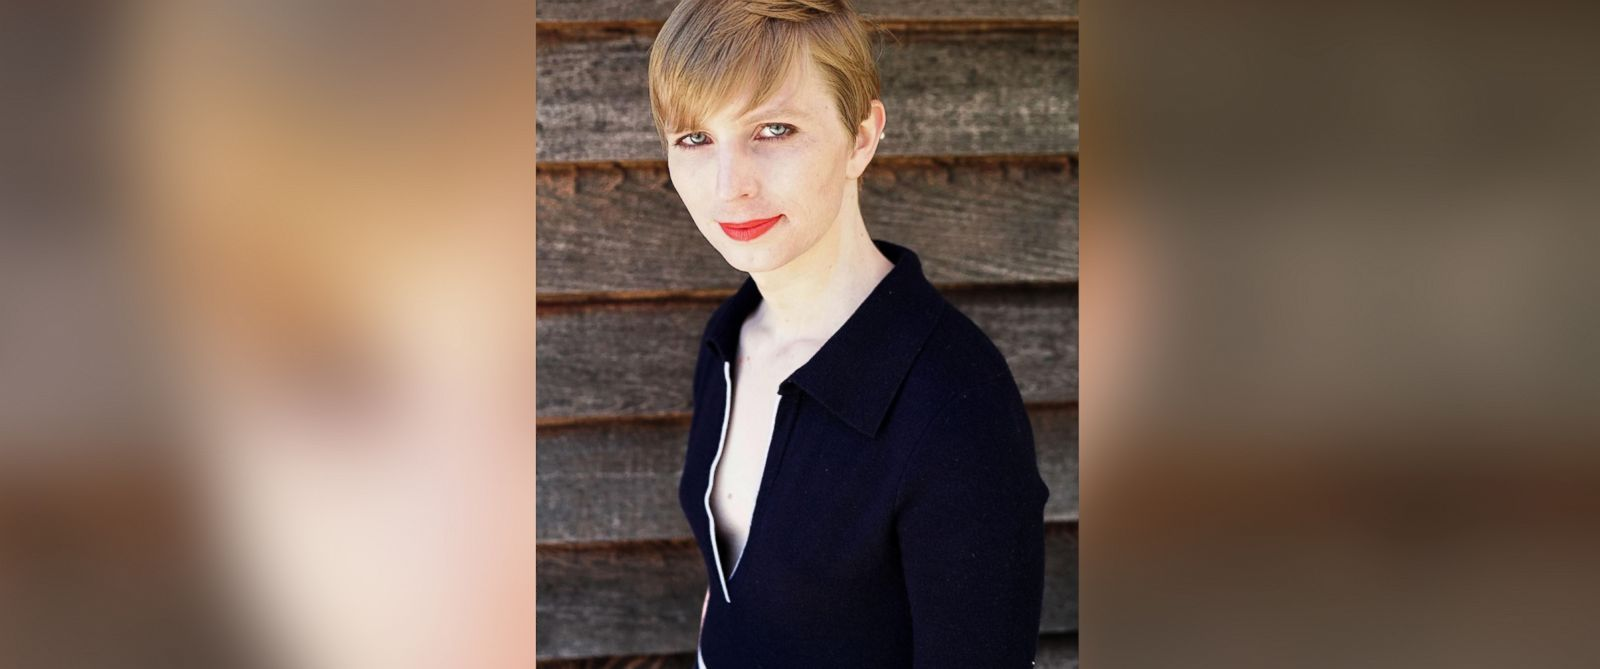 Chelsea Manning is the New Cover Girl for the Left [VIDEO]